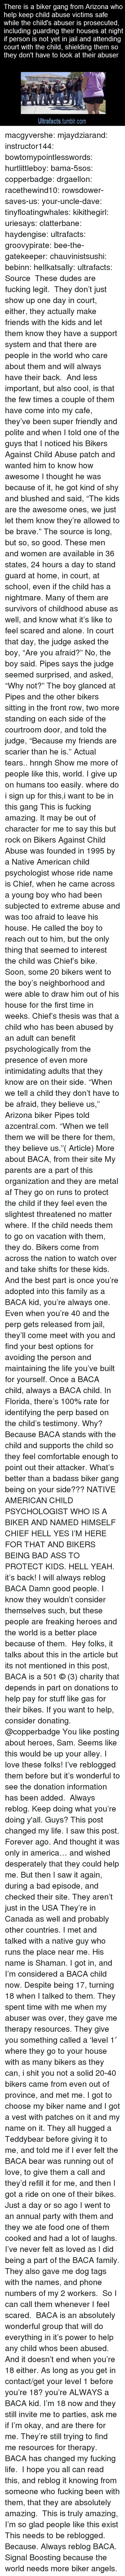 """Metal Af: There is a biker gang from Arizona who  help keep child abuse victims safe  while the child's abuser is prosecuted,  including guarding their houses at night  person is not yet in jail and attending  court with the child, shielding them so  they don't have to look at their abuser  Ultrafacts.tumblr.com macgyvershe: mjaydziarand:  instructor144:  bowtomypointlesswords:  hurtlittleboy:  bama-5sos:  copperbadge:  drgaellon:  racethewind10:  rowsdower-saves-us:  your-uncle-dave:  tinyfloatingwhales:  kikithegirl:  uriesays:  clatterbane:  haydengise:  ultrafacts:  groovypirate:  bee-the-gatekeeper:  chauvinistsushi:  bebinn:  hellkatsally:  ultrafacts:  Source  These dudes are fucking legit. They don't just show up one day in court, either, they actually make friends with the kids and let them know they have a support system and that there are people in the world who care about them and will always have their back. And less important, but also cool, is that the few times a couple of them have come into my cafe, they've been super friendly and polite and when I told one of the guys that I noticed his Bikers Against Child Abuse patch and wanted him to know how awesome I thought he was because of it, he got kind of shy and blushed and said, """"The kids are the awesome ones, we just let them know they're allowed to be brave.""""  The source is long, but so, so good. These men and women are available in 36 states, 24 hours a day to stand guard at home, in court, at school, even if the child has a nightmare. Many of them are survivors of childhood abuse as well, and know what it's like to feel scared and alone.  In court that day, the judge asked the boy, """"Are you afraid?"""" No, the boy said. Pipes says the judge seemed surprised, and asked, """"Why not?"""" The boy glanced at Pipes and the other bikers sitting in the front row, two more standing on each side of the courtroom door, and told the judge, """"Because my friends are scarier than he is.""""   Actual tears.. hnngh  Show me m"""